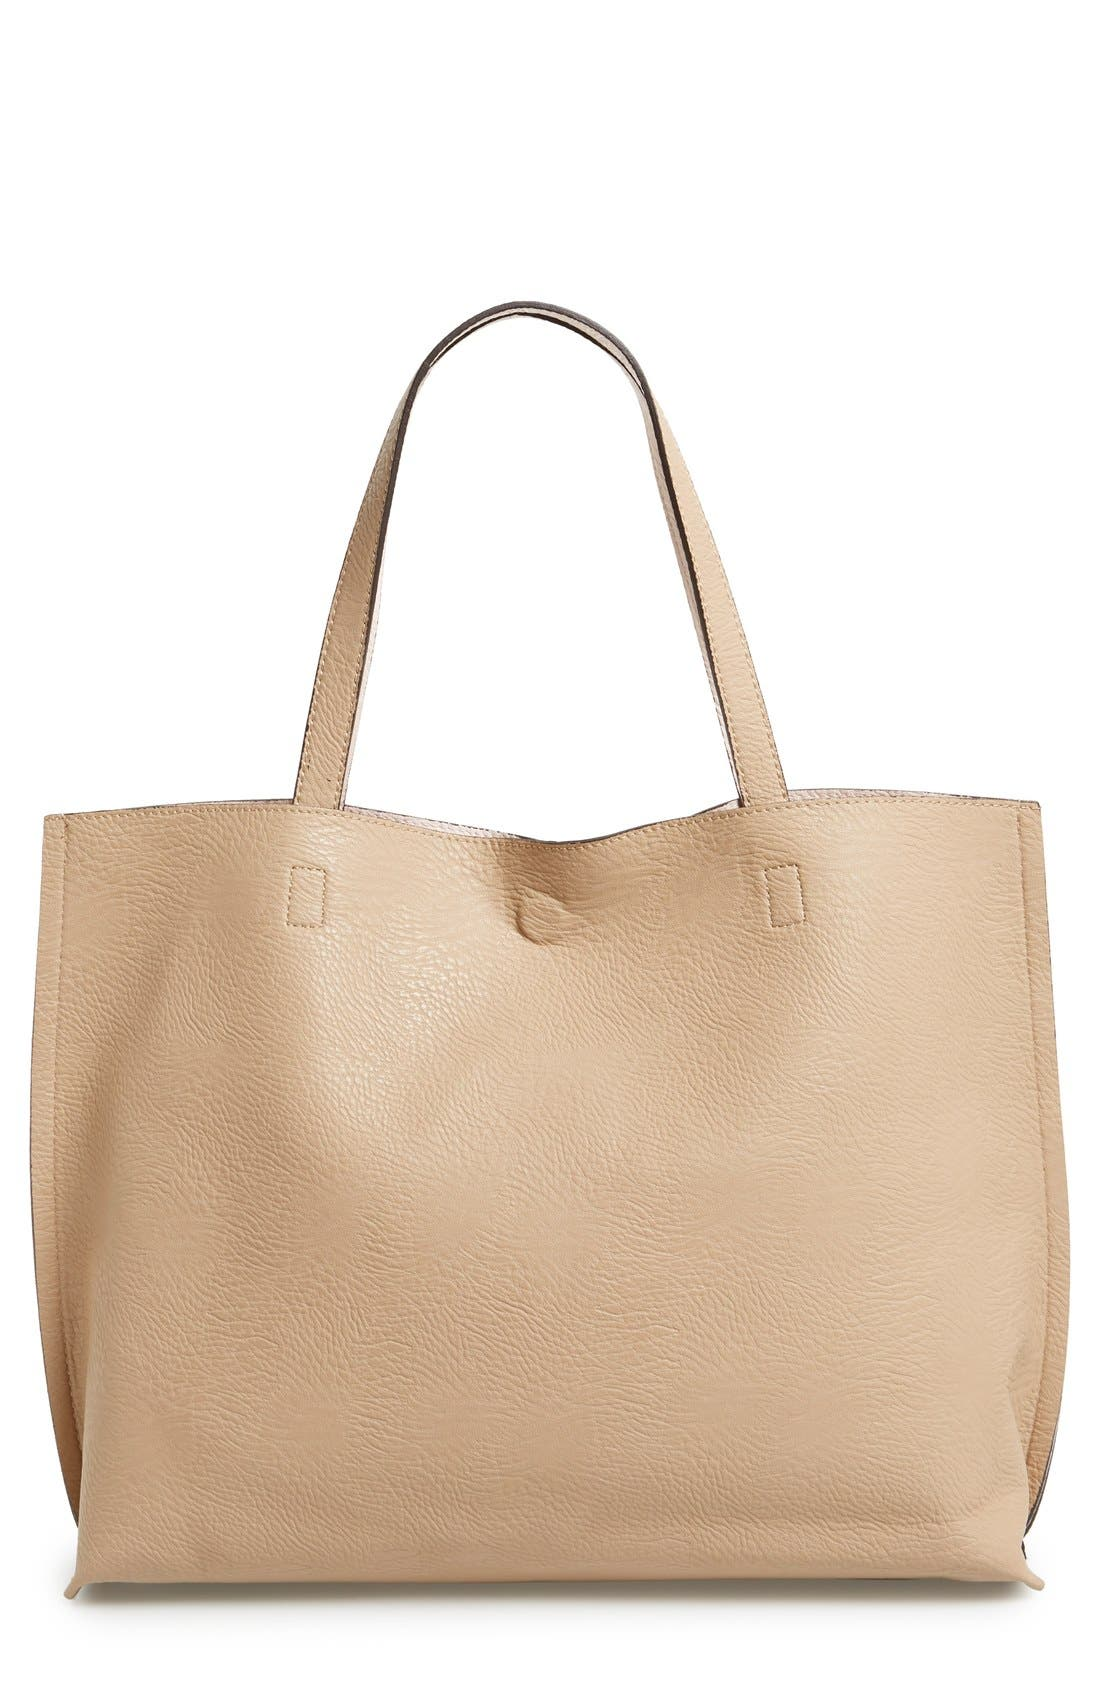 Alternate Image 1 Selected - Street Level Reversible Faux Leather Tote & Wristlet